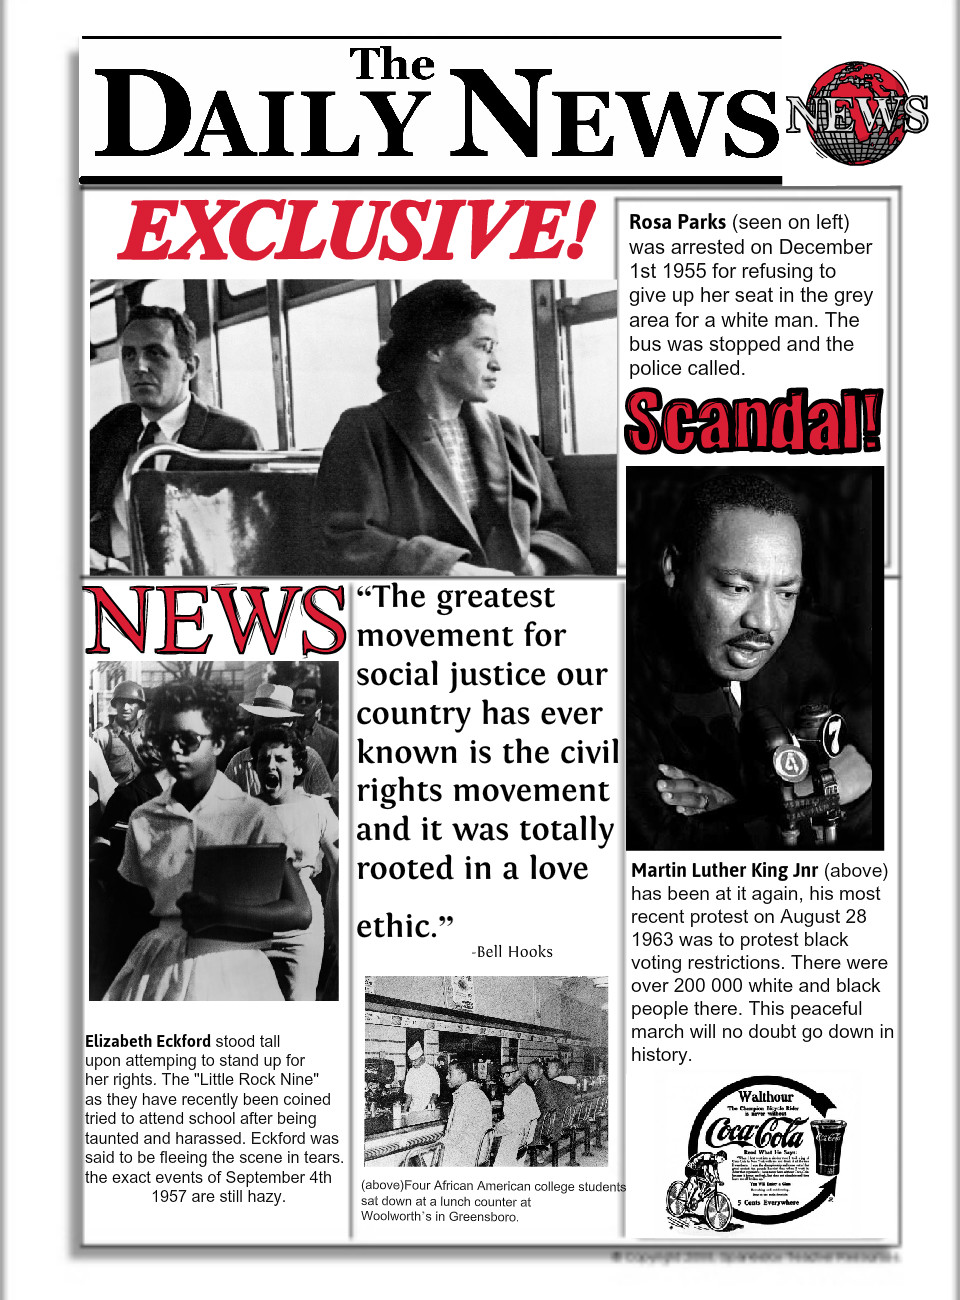 The Daily News- Civil Rights Movement